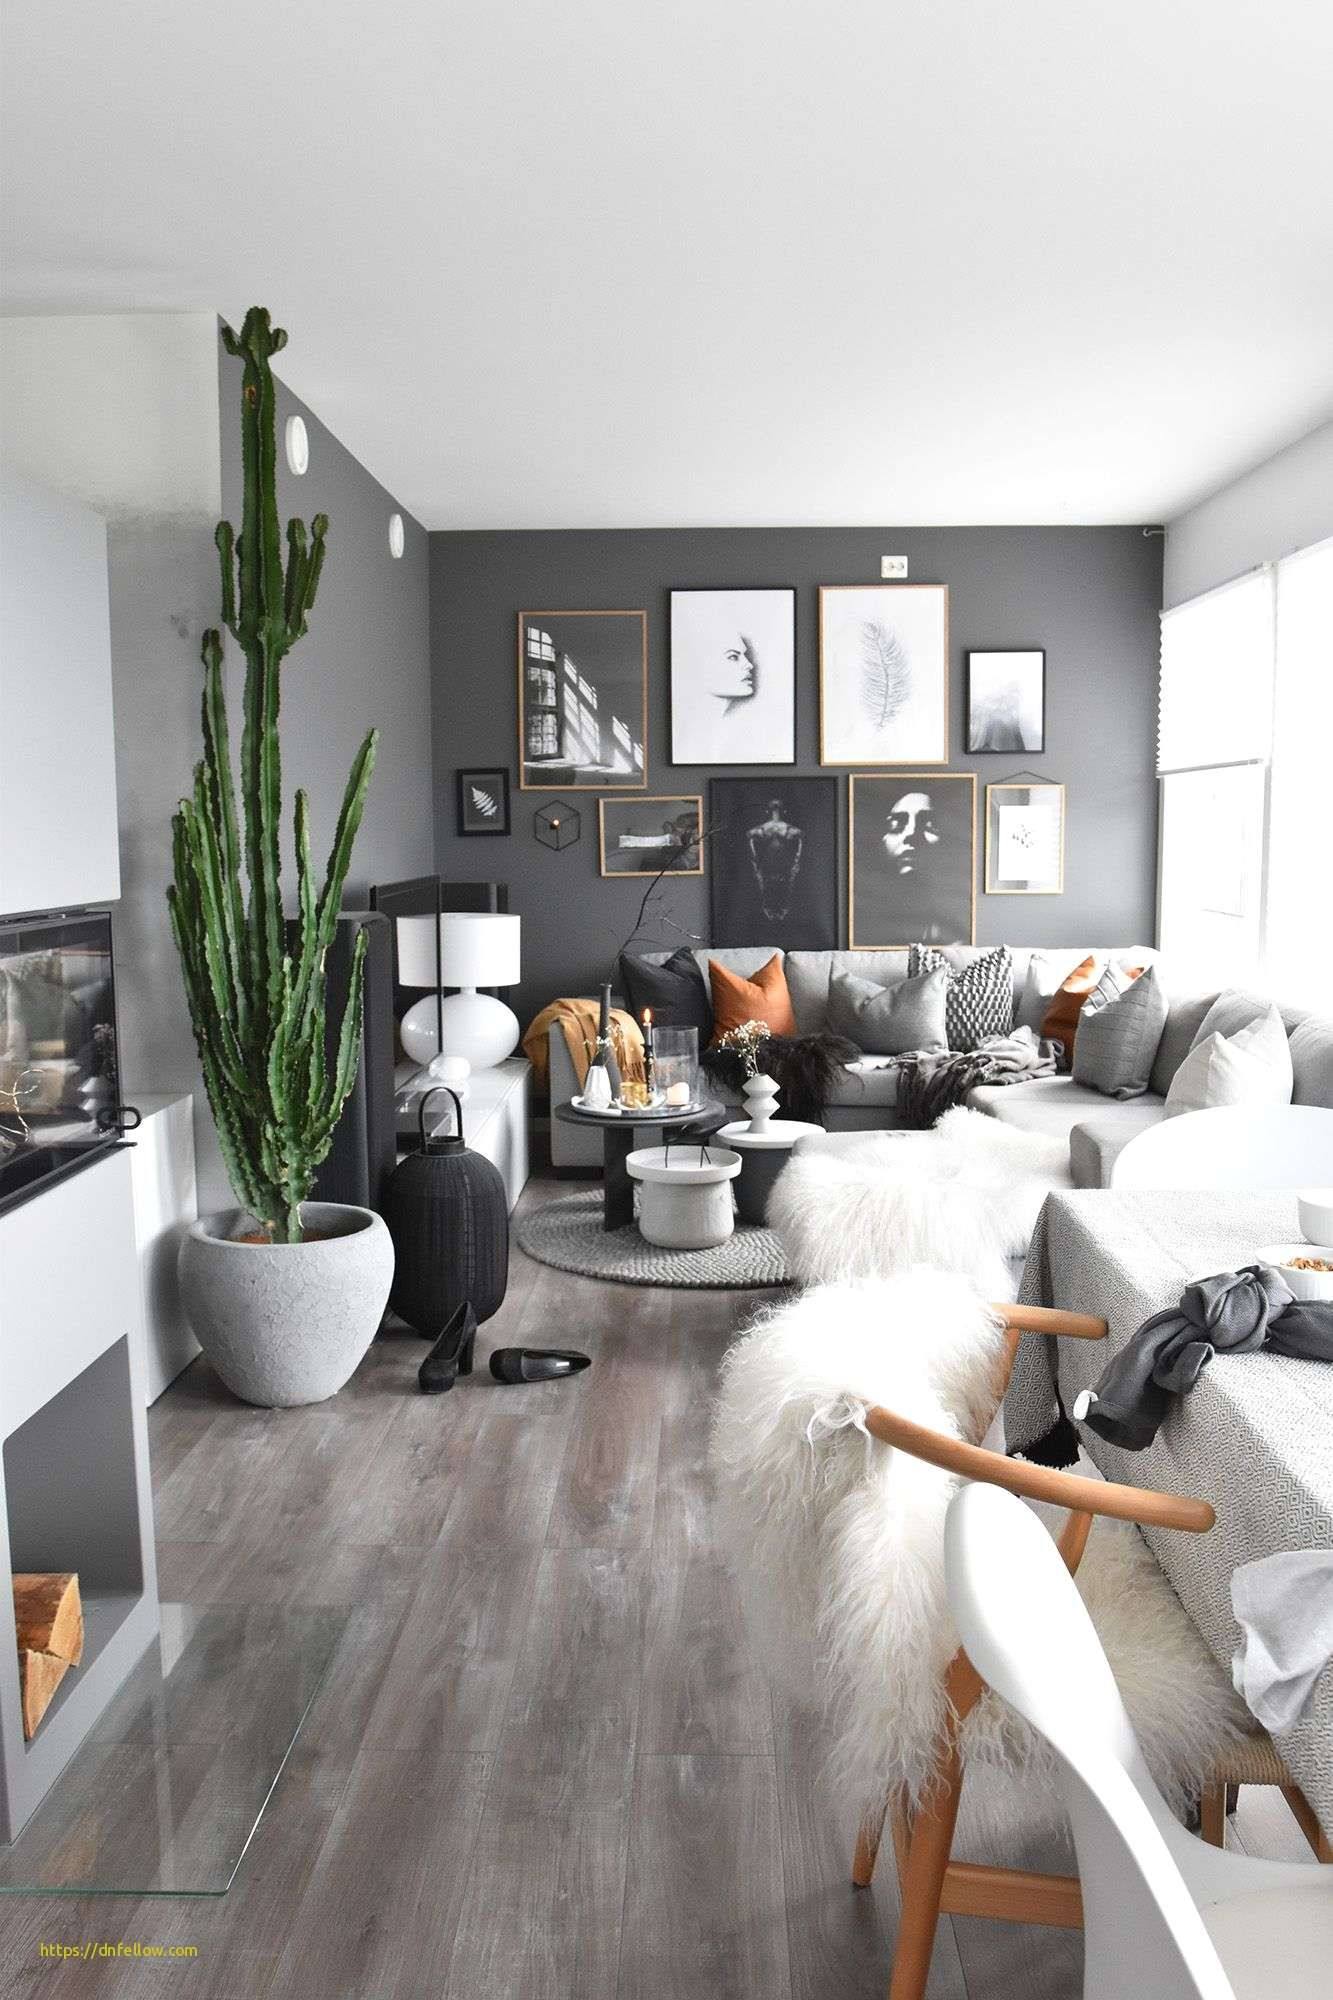 10 X 16 Living Room Interior With Images Black Walls Living